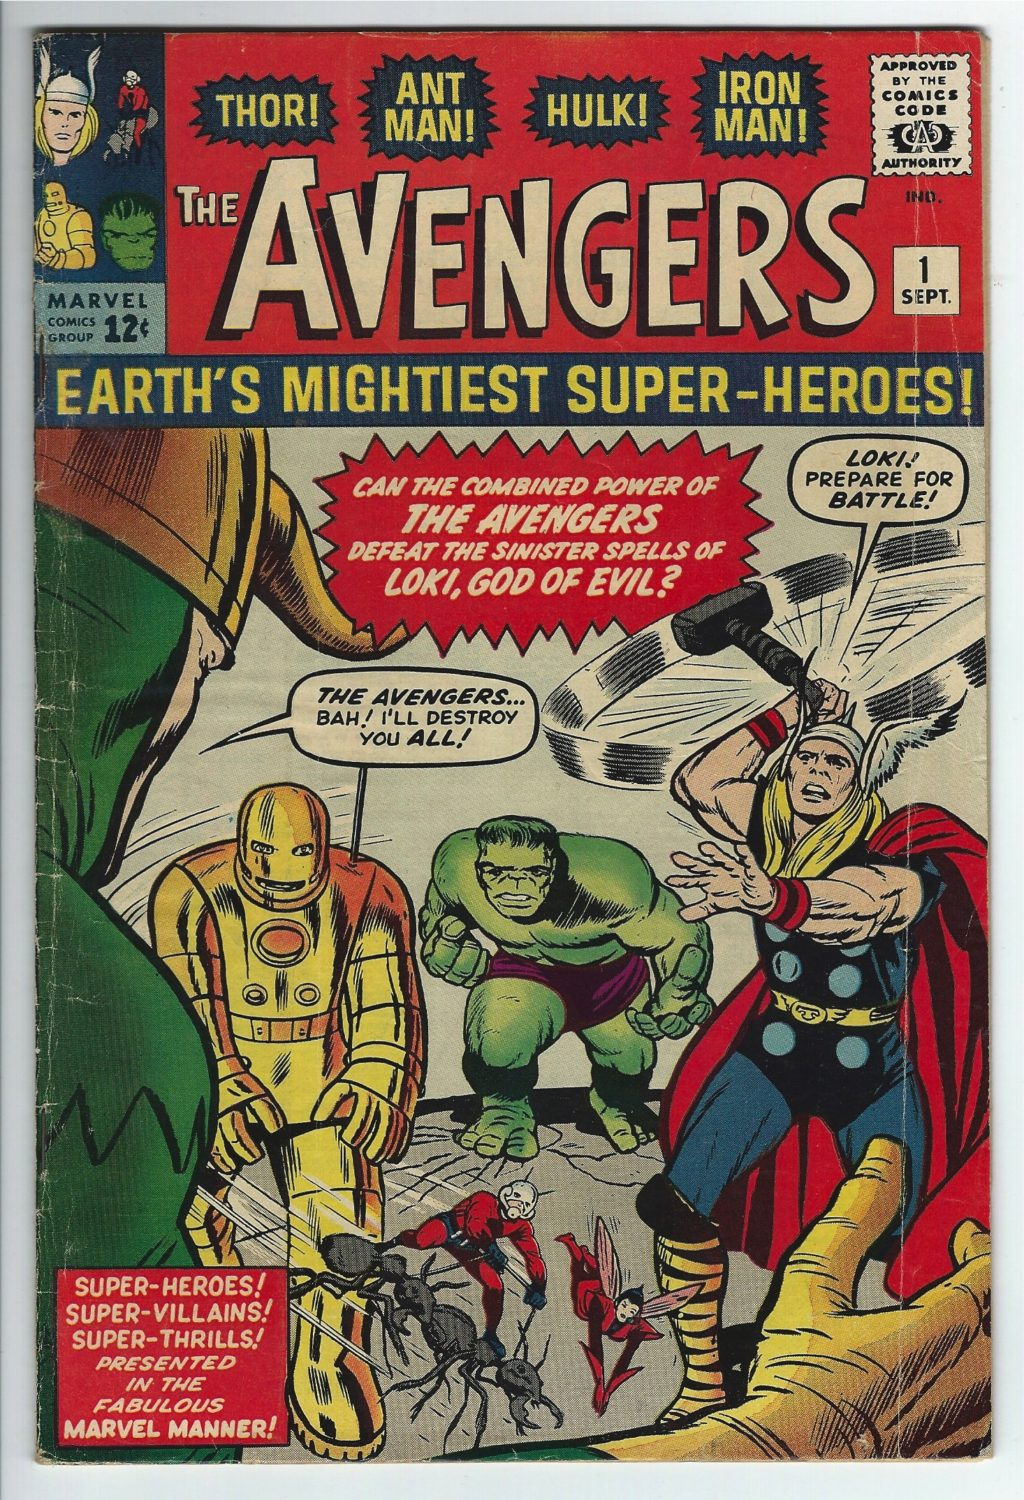 marvel comics avengers #1 1